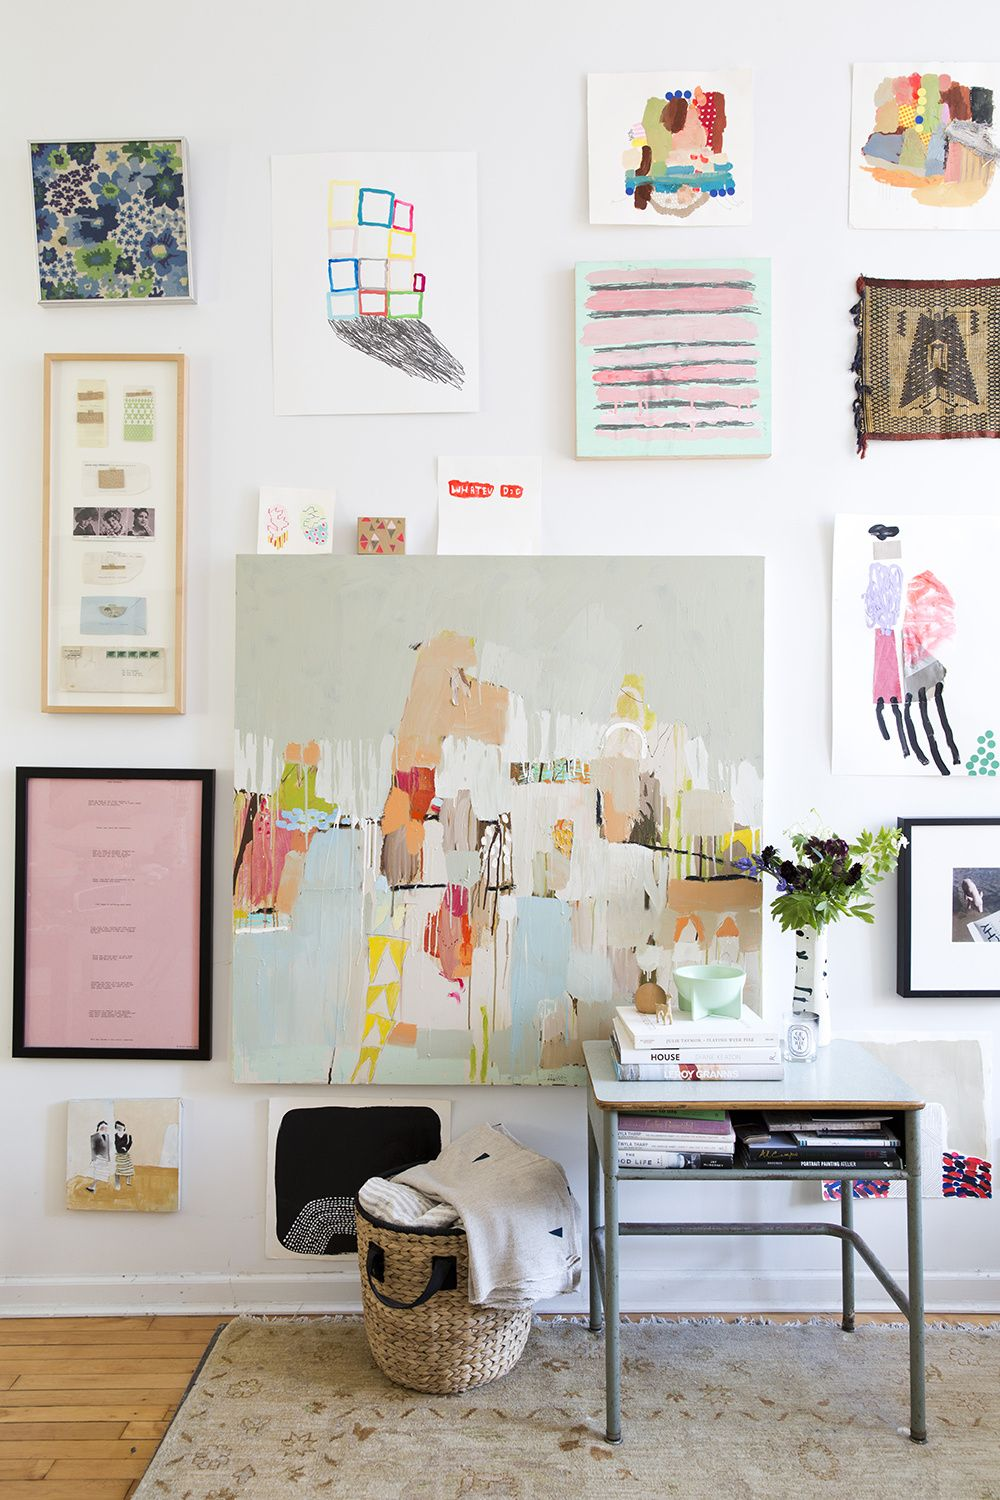 df591e25371dc00e-Anthology_Hurley_0428.jpg | Gallery Wall Styling ...